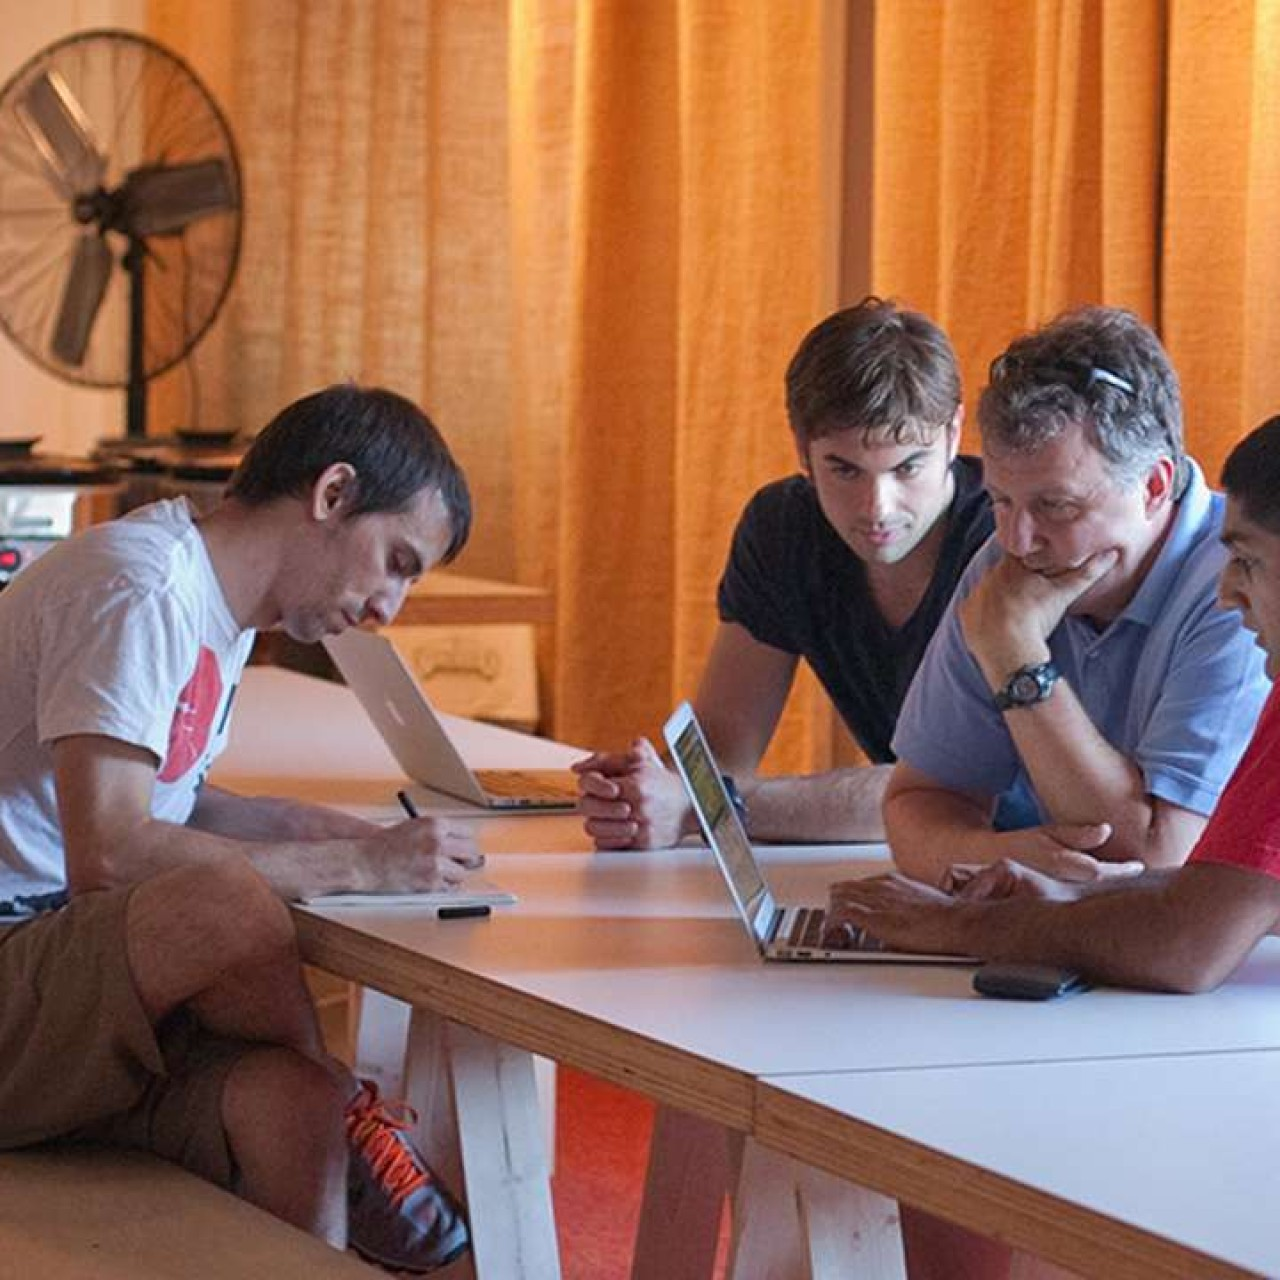 Silicon Valley's Y Combinator demands teamwork and a viable